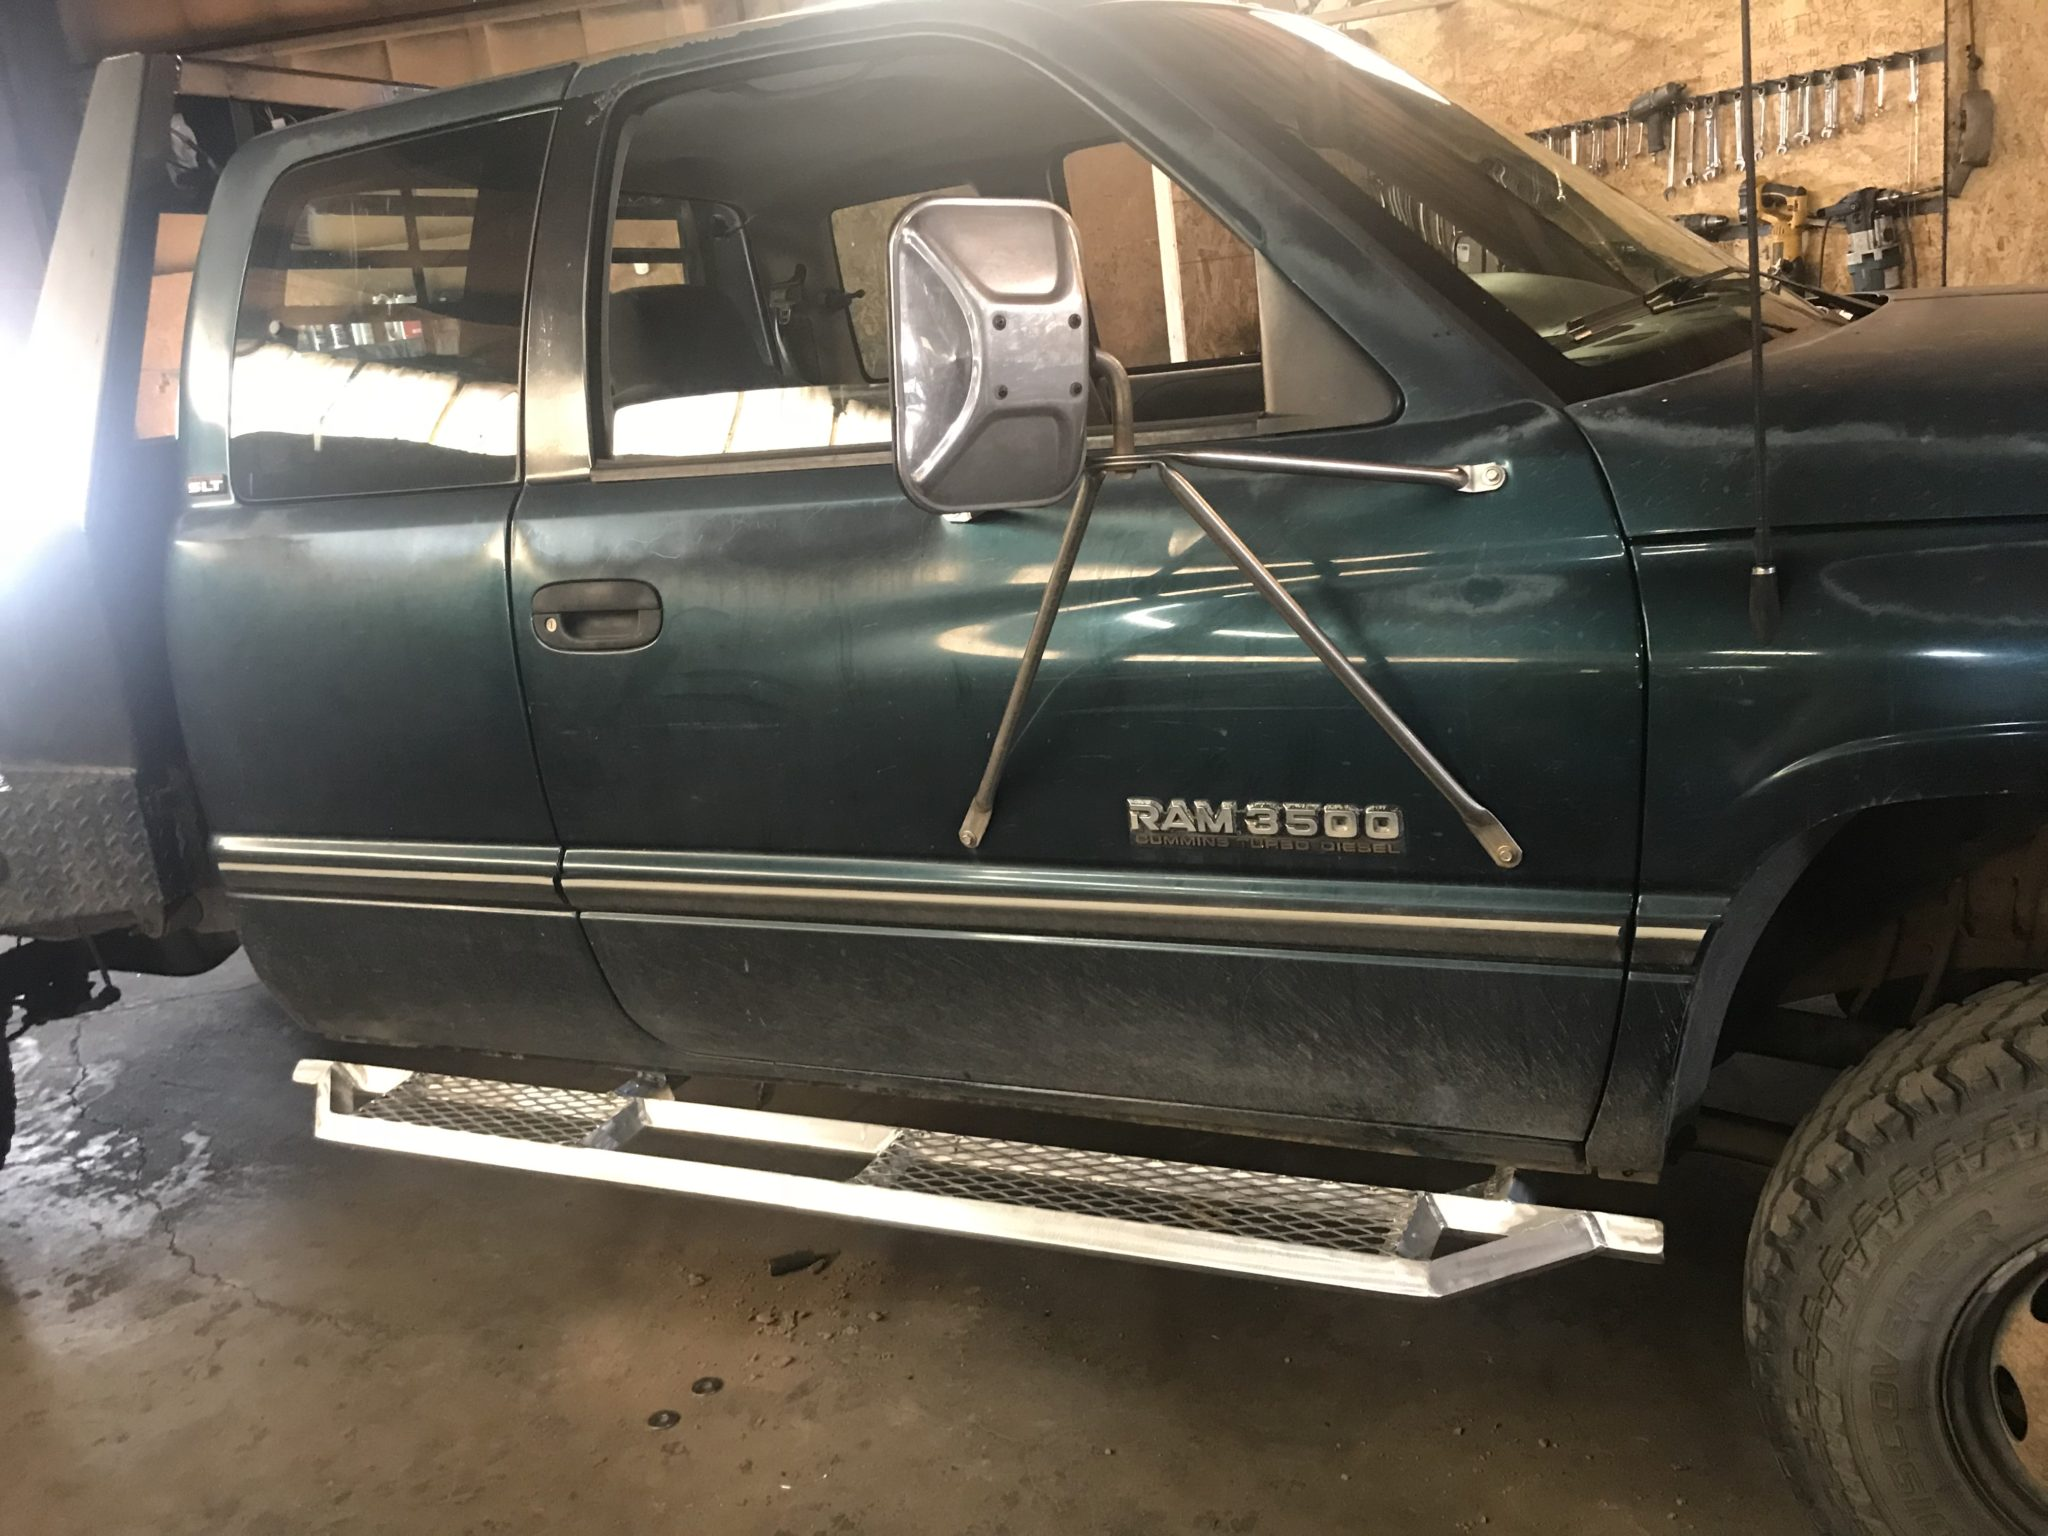 Ram3500 with aluminum running boards